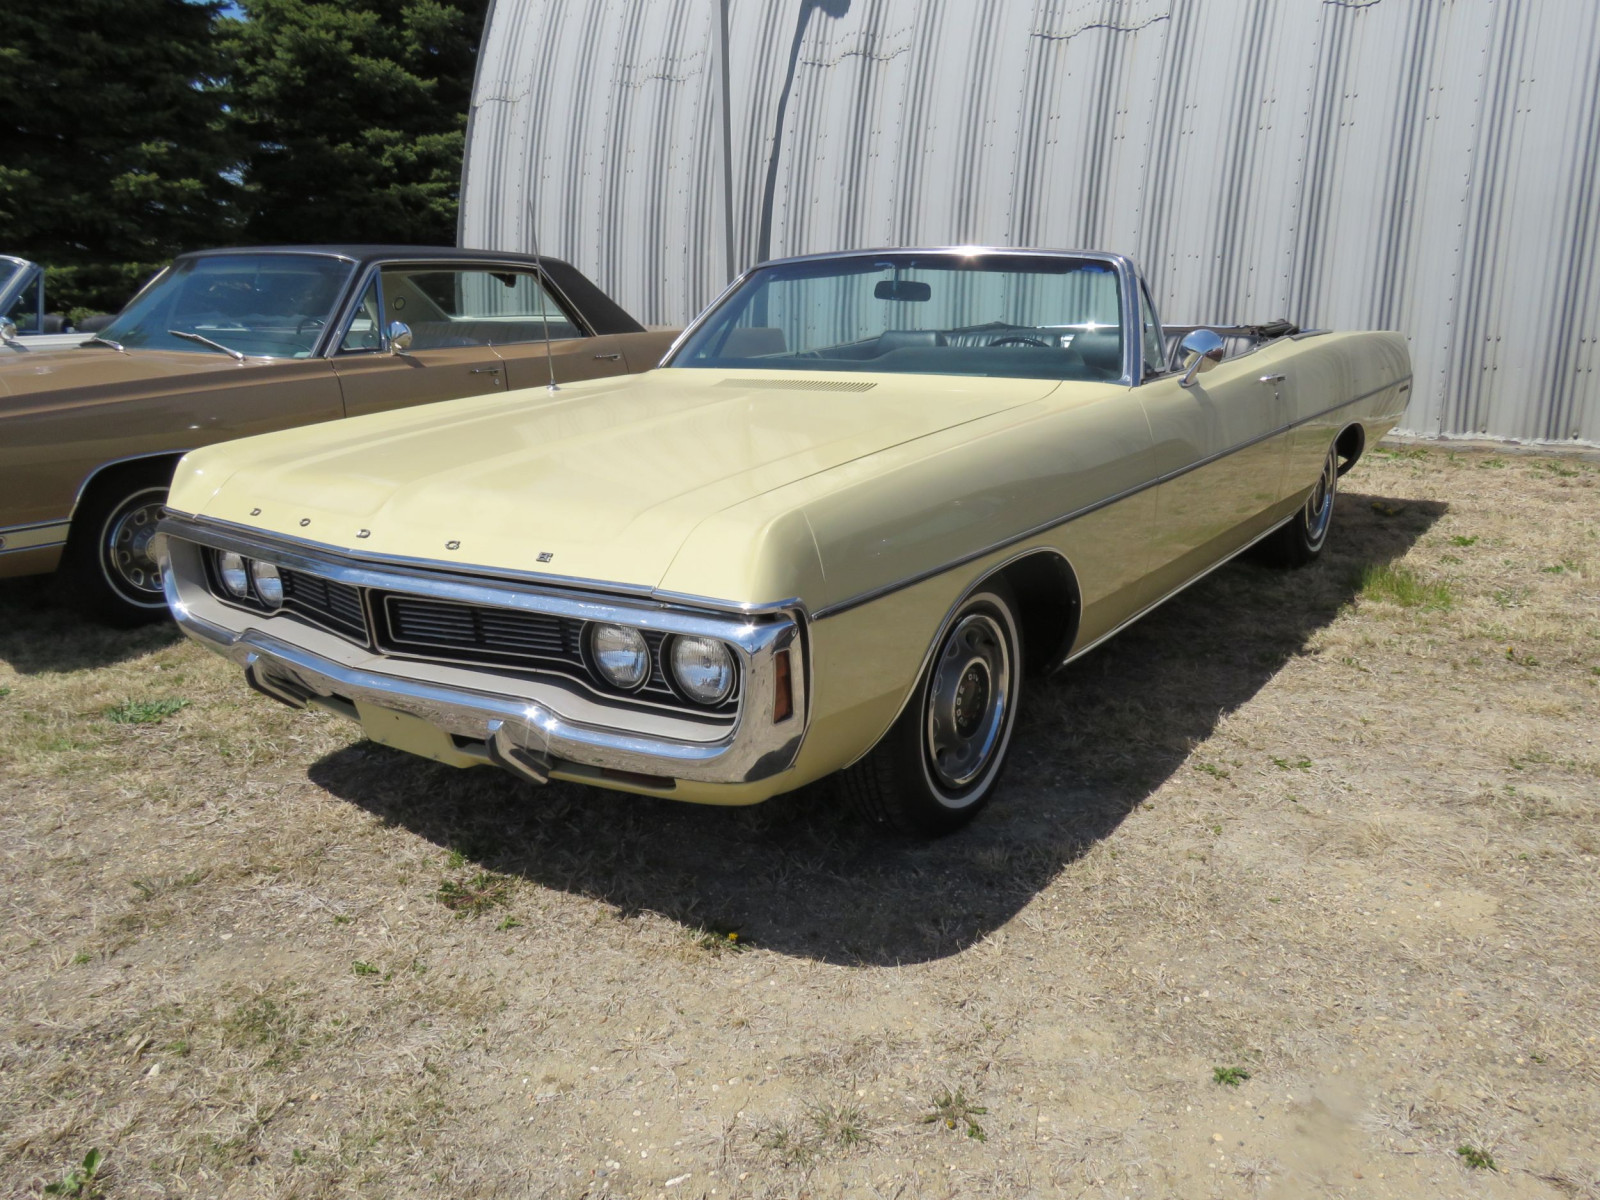 Rare 1970 Dodge Polara Convertible - Image 1